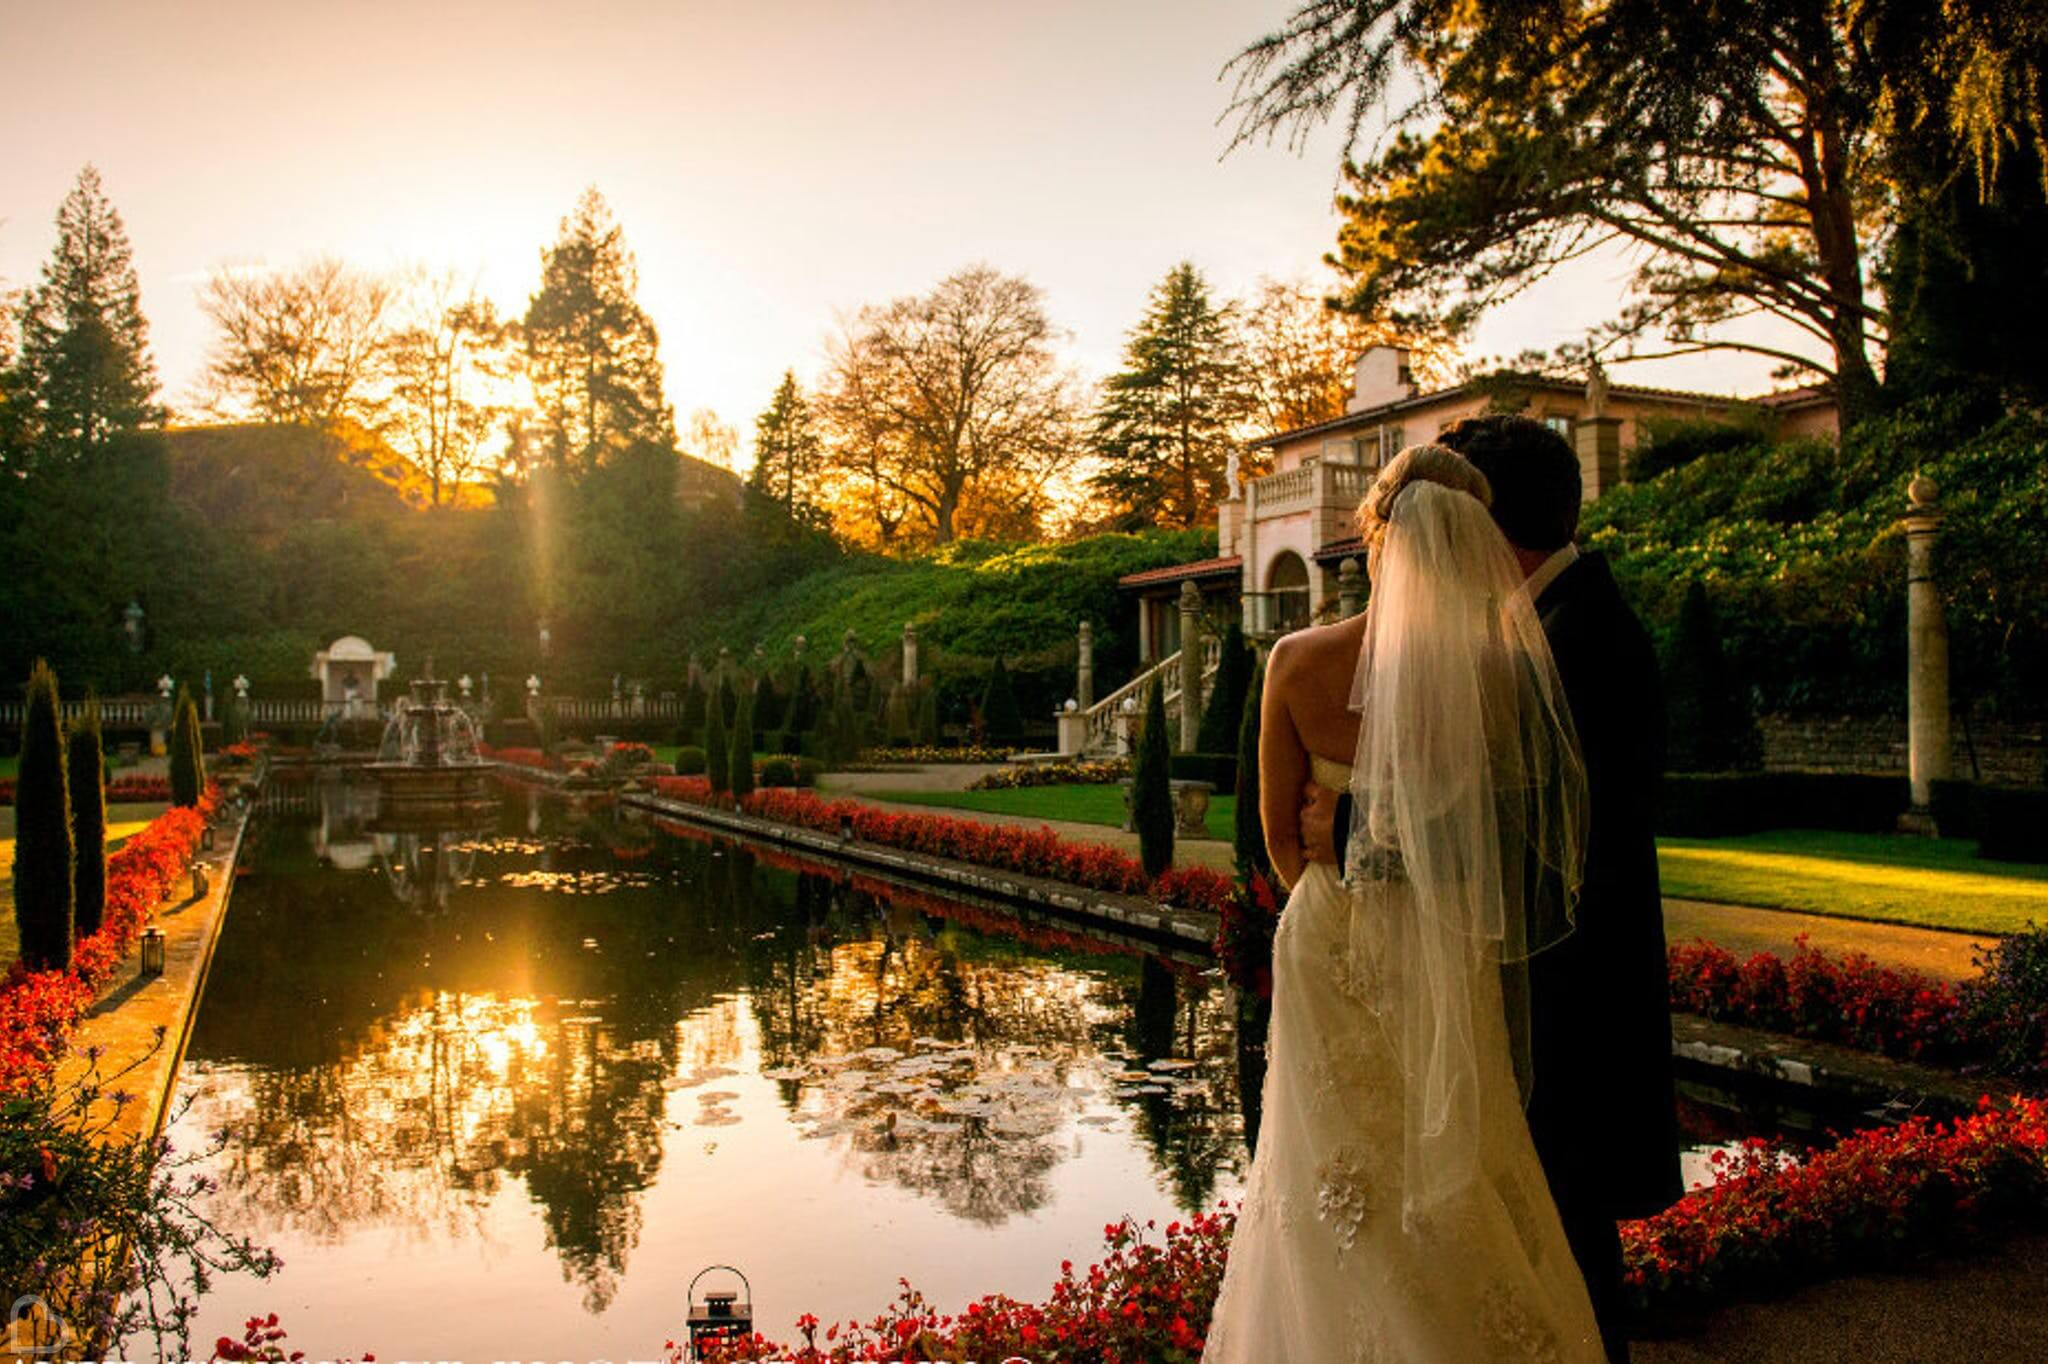 newlyweds embrace and watch the sunset over a lake at the italian villa at compton acres, a wedding venue in dorset.